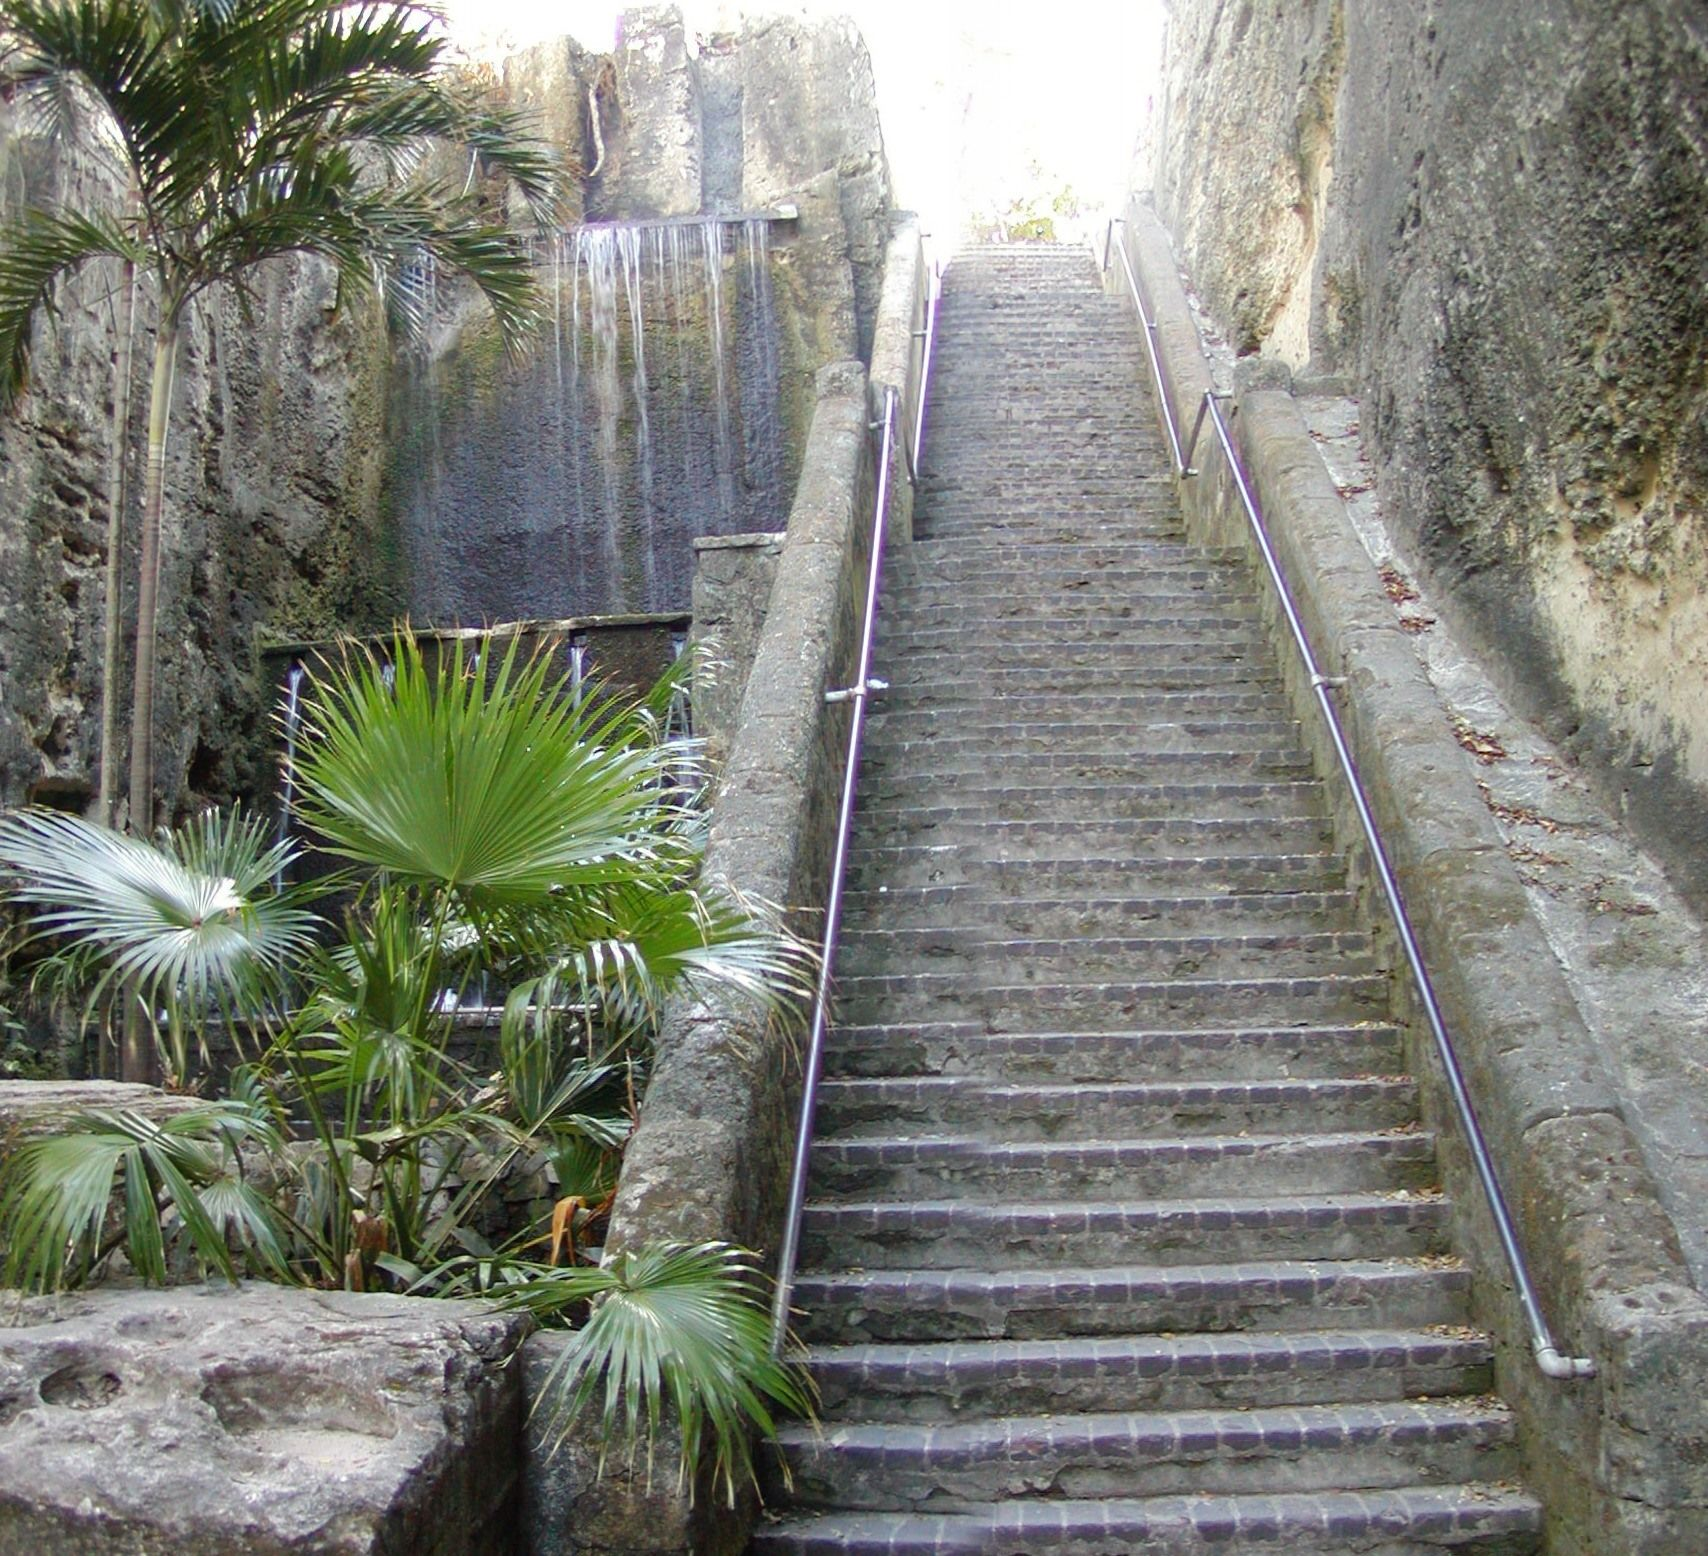 The Queen S Staircase Carved Out Of Sandstone In 1793 To Provide